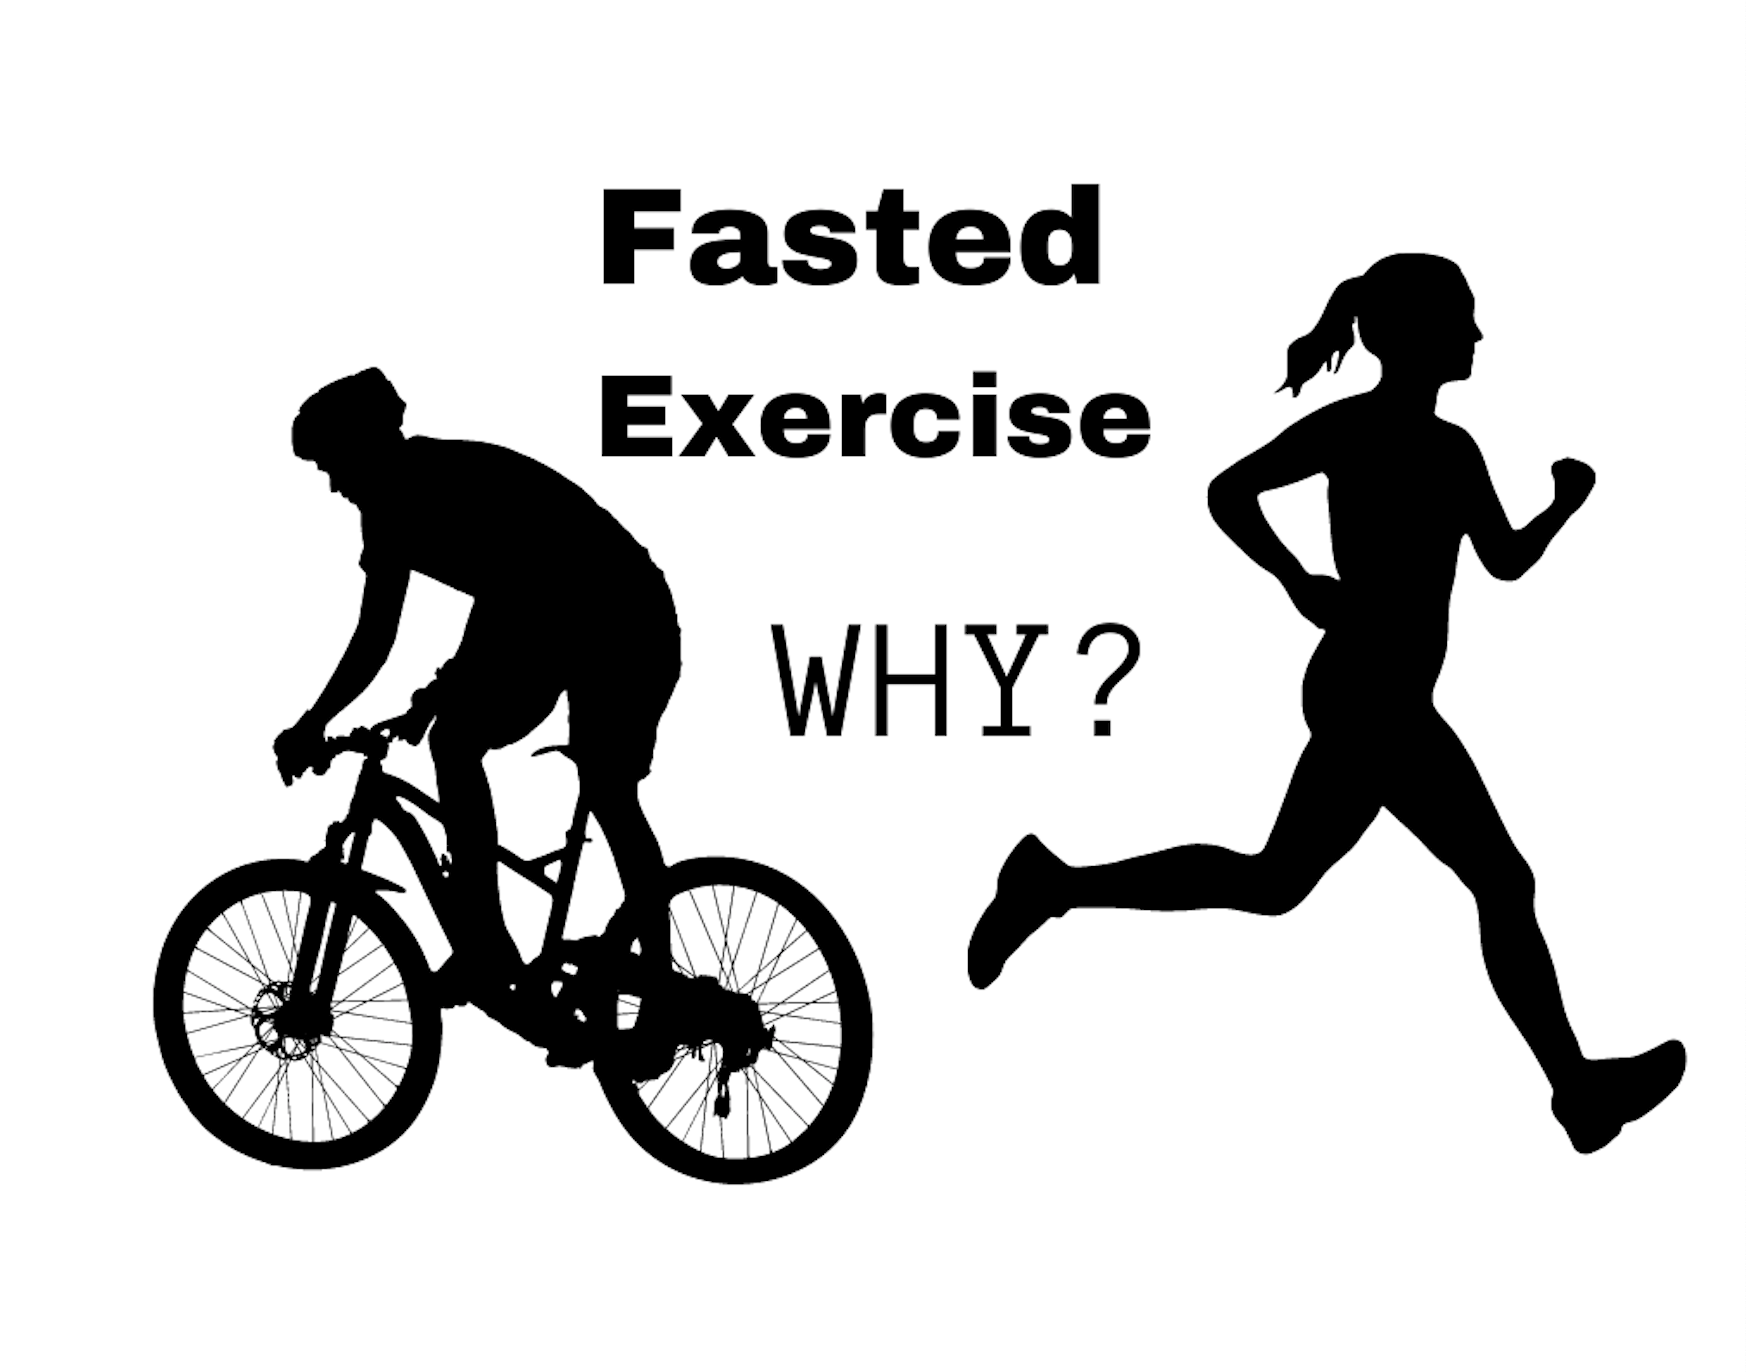 Fasting Exercise - Why?